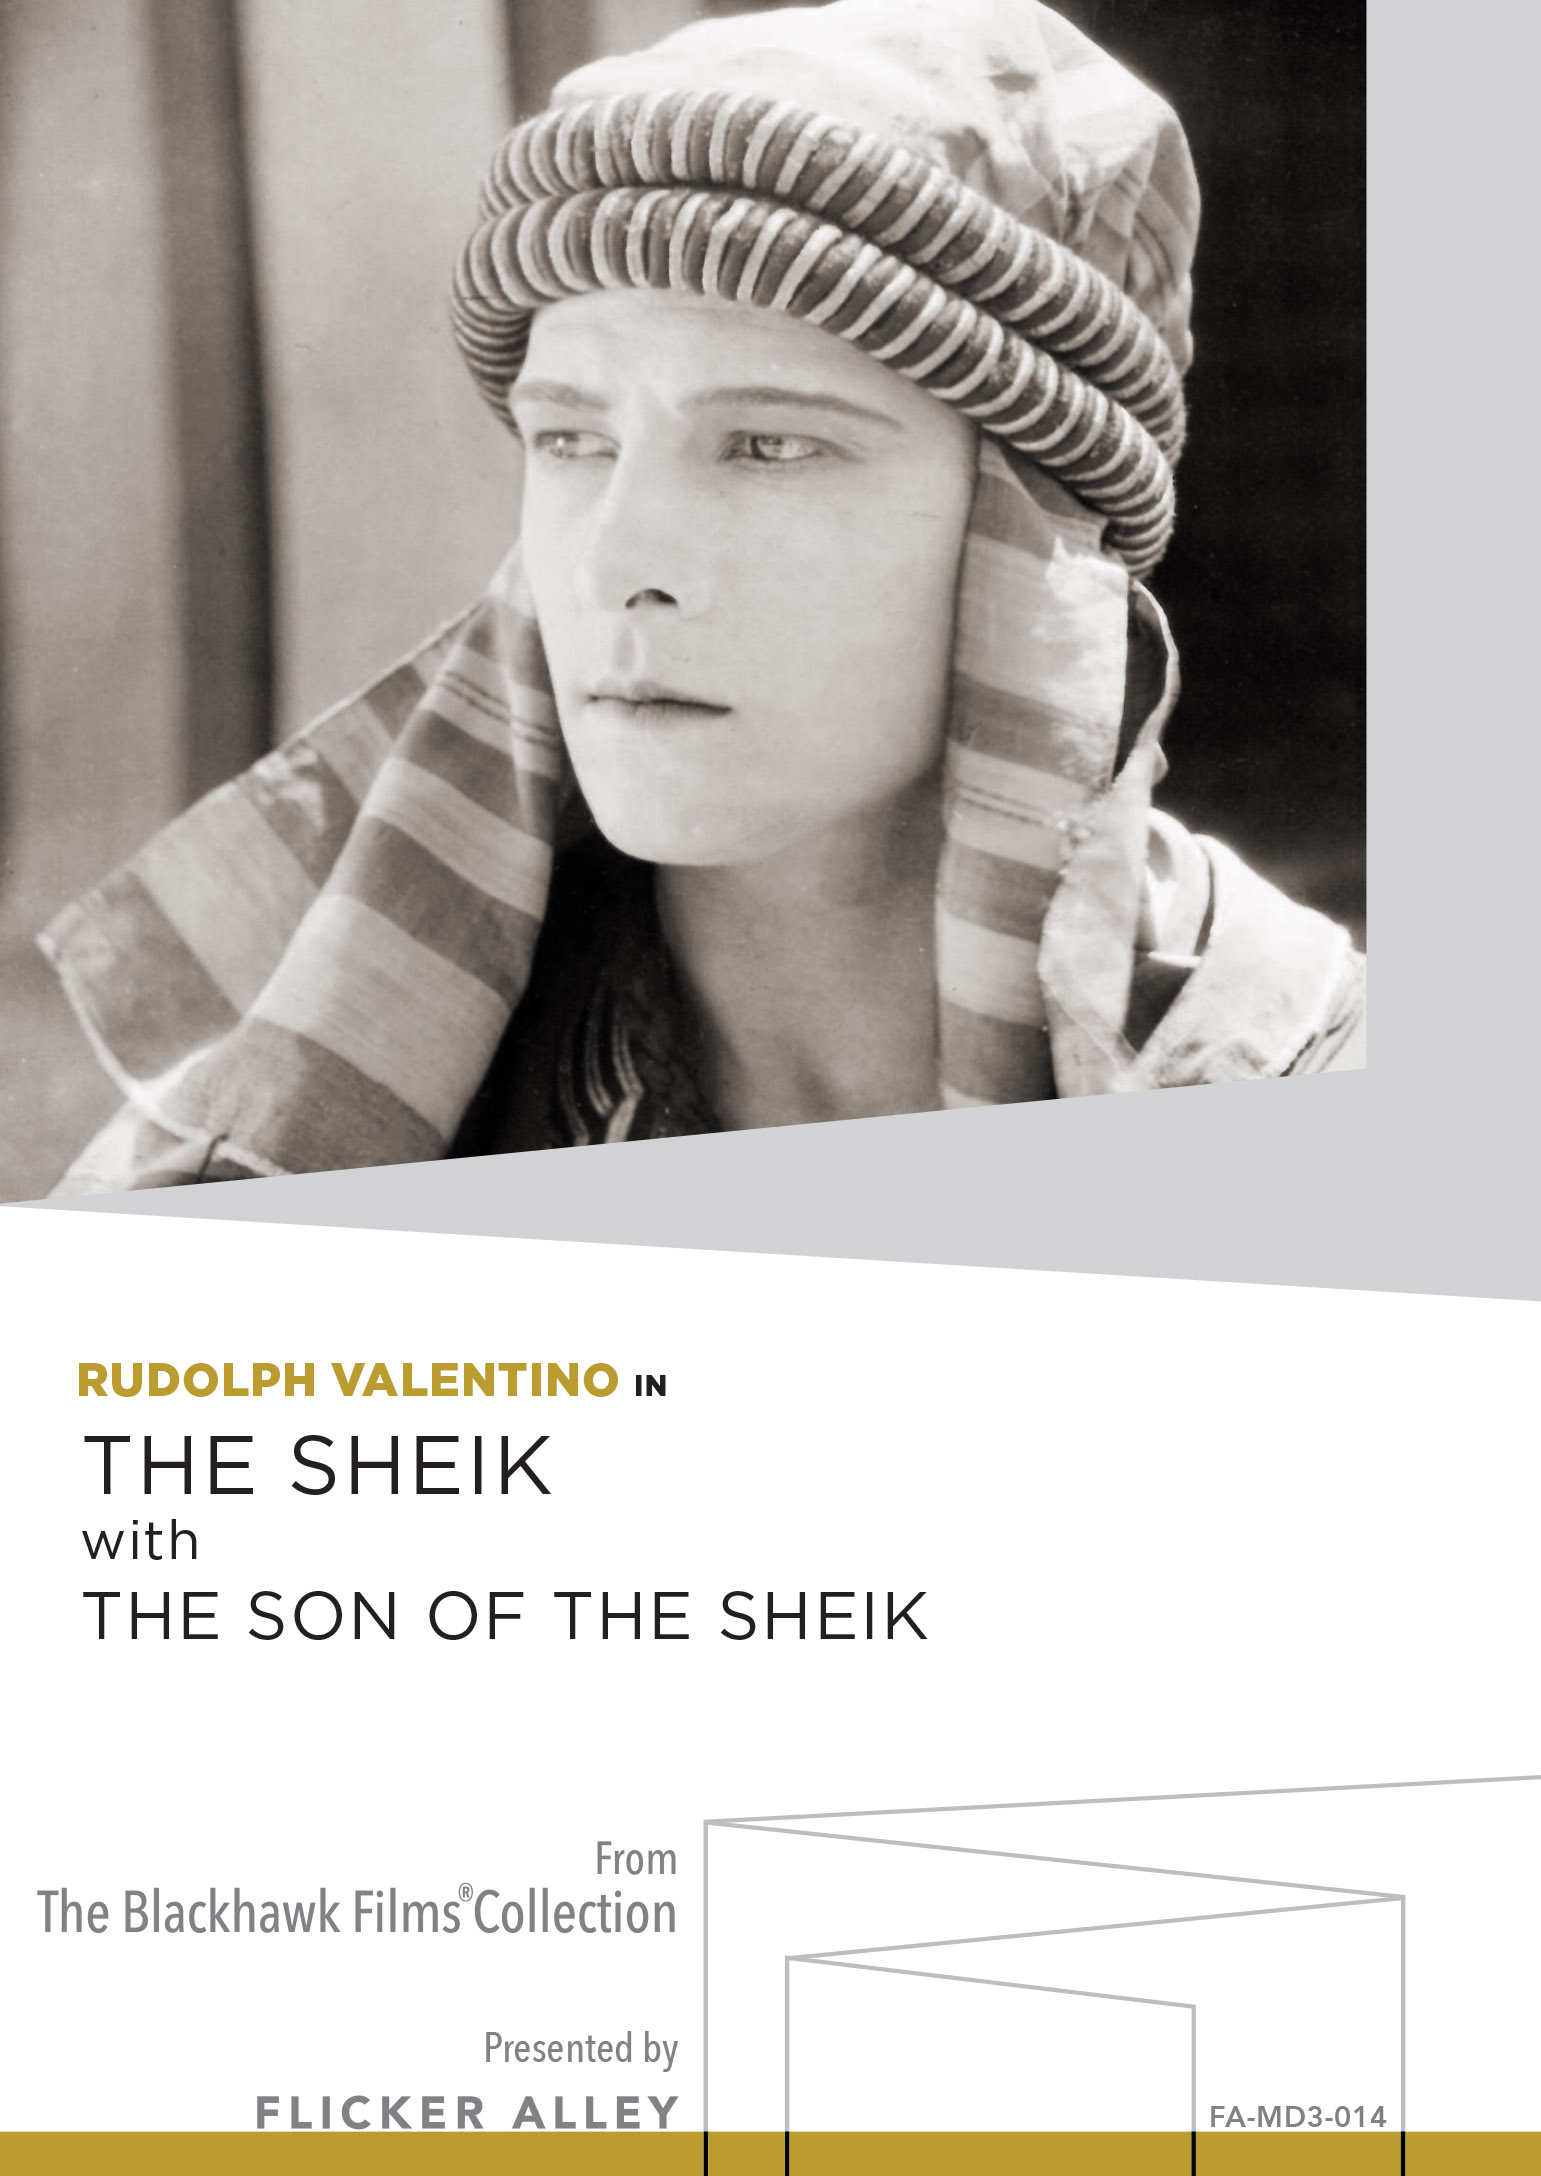 The Sheik with The Son of The Sheik MOD DVD Flicker Alley Silent Film Blu-ray DVD Stream buy MOD